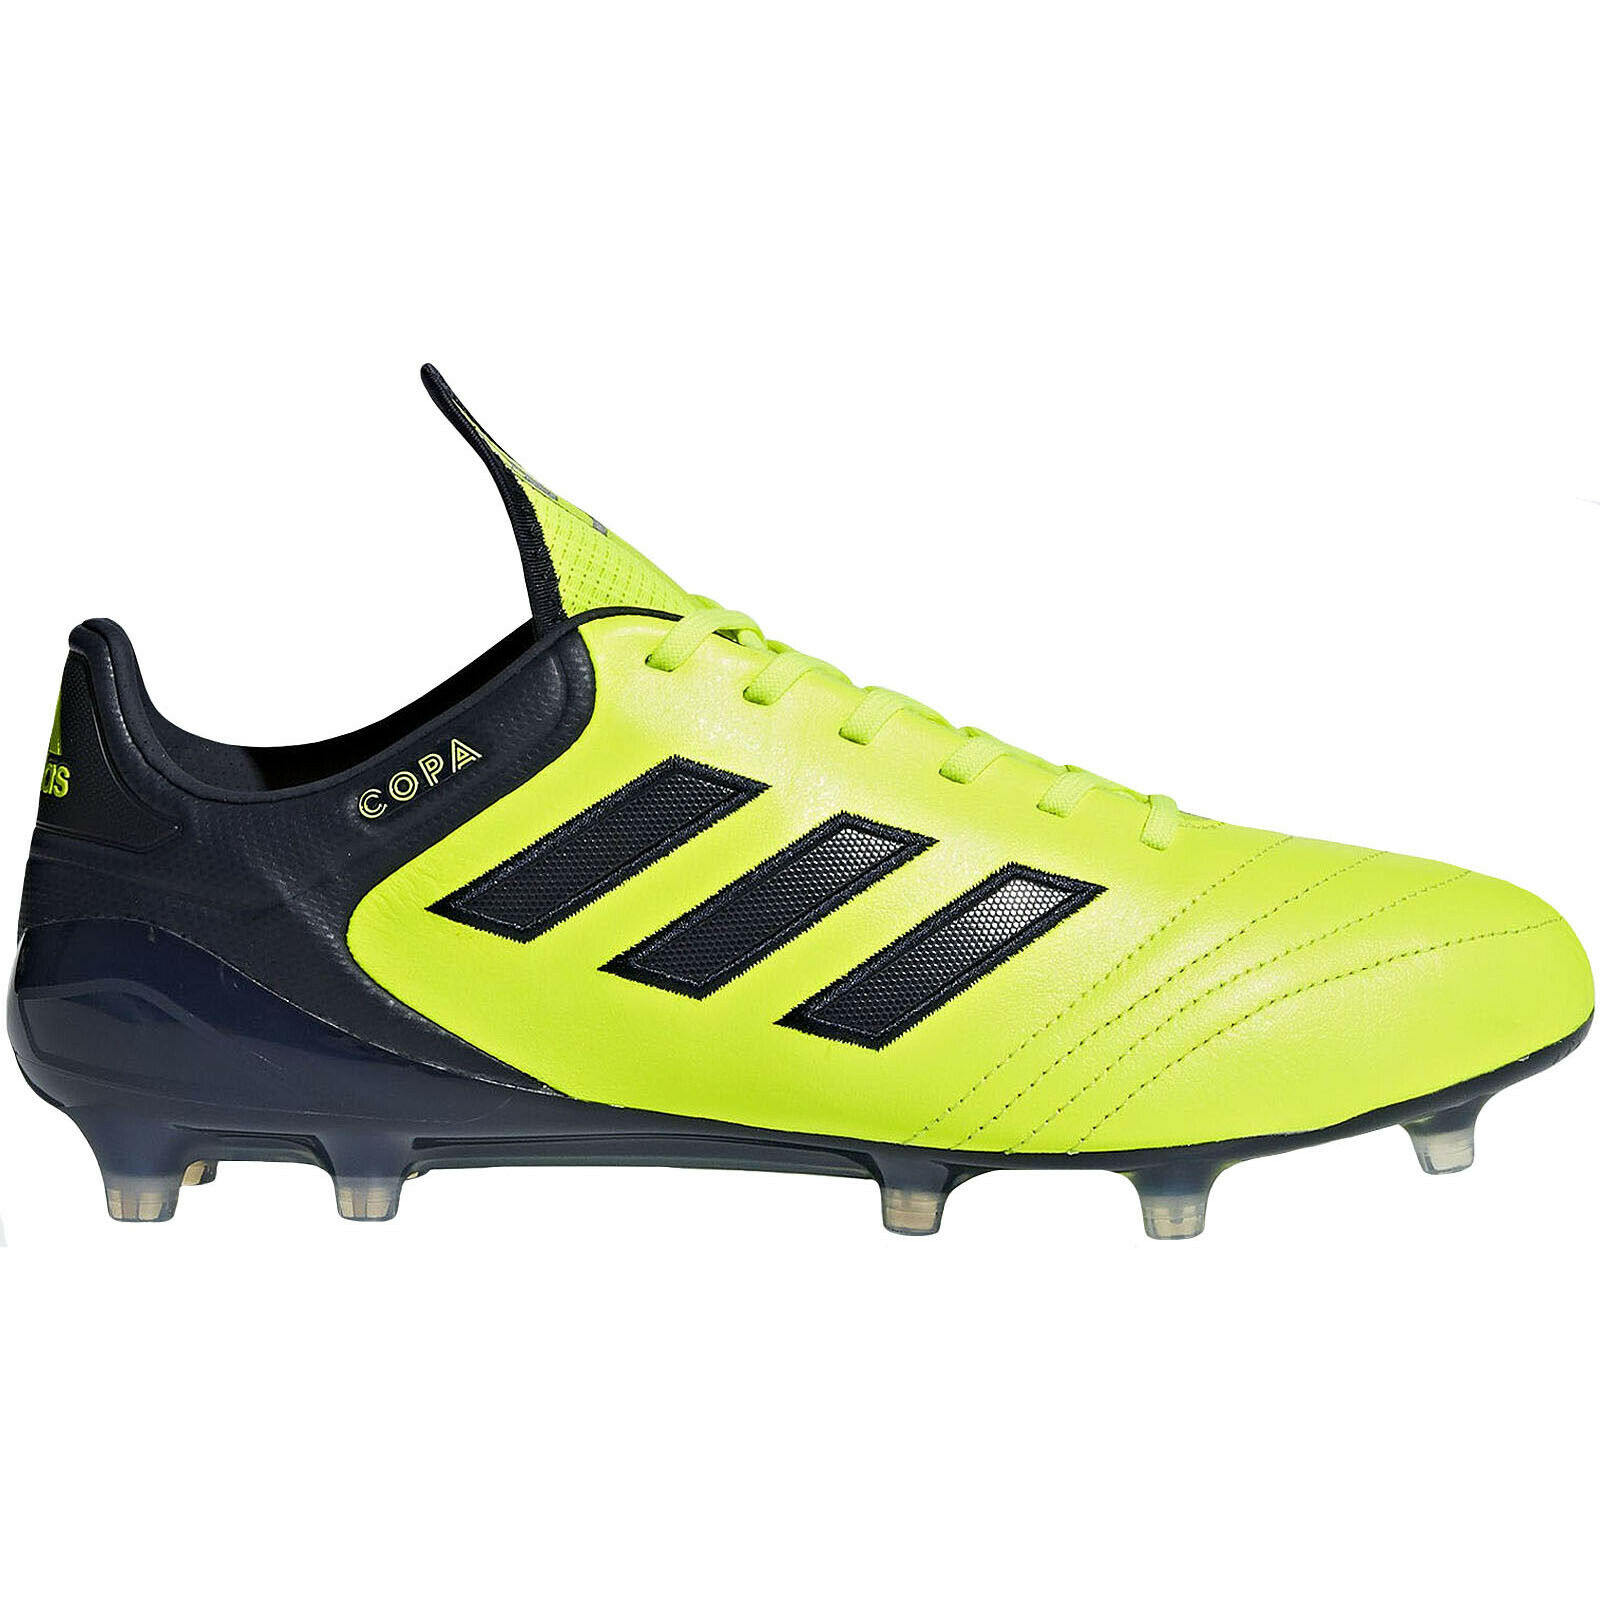 Adidas Performance Mens Copa 17.1 Firm Ground Football Soccer stivali  giallo